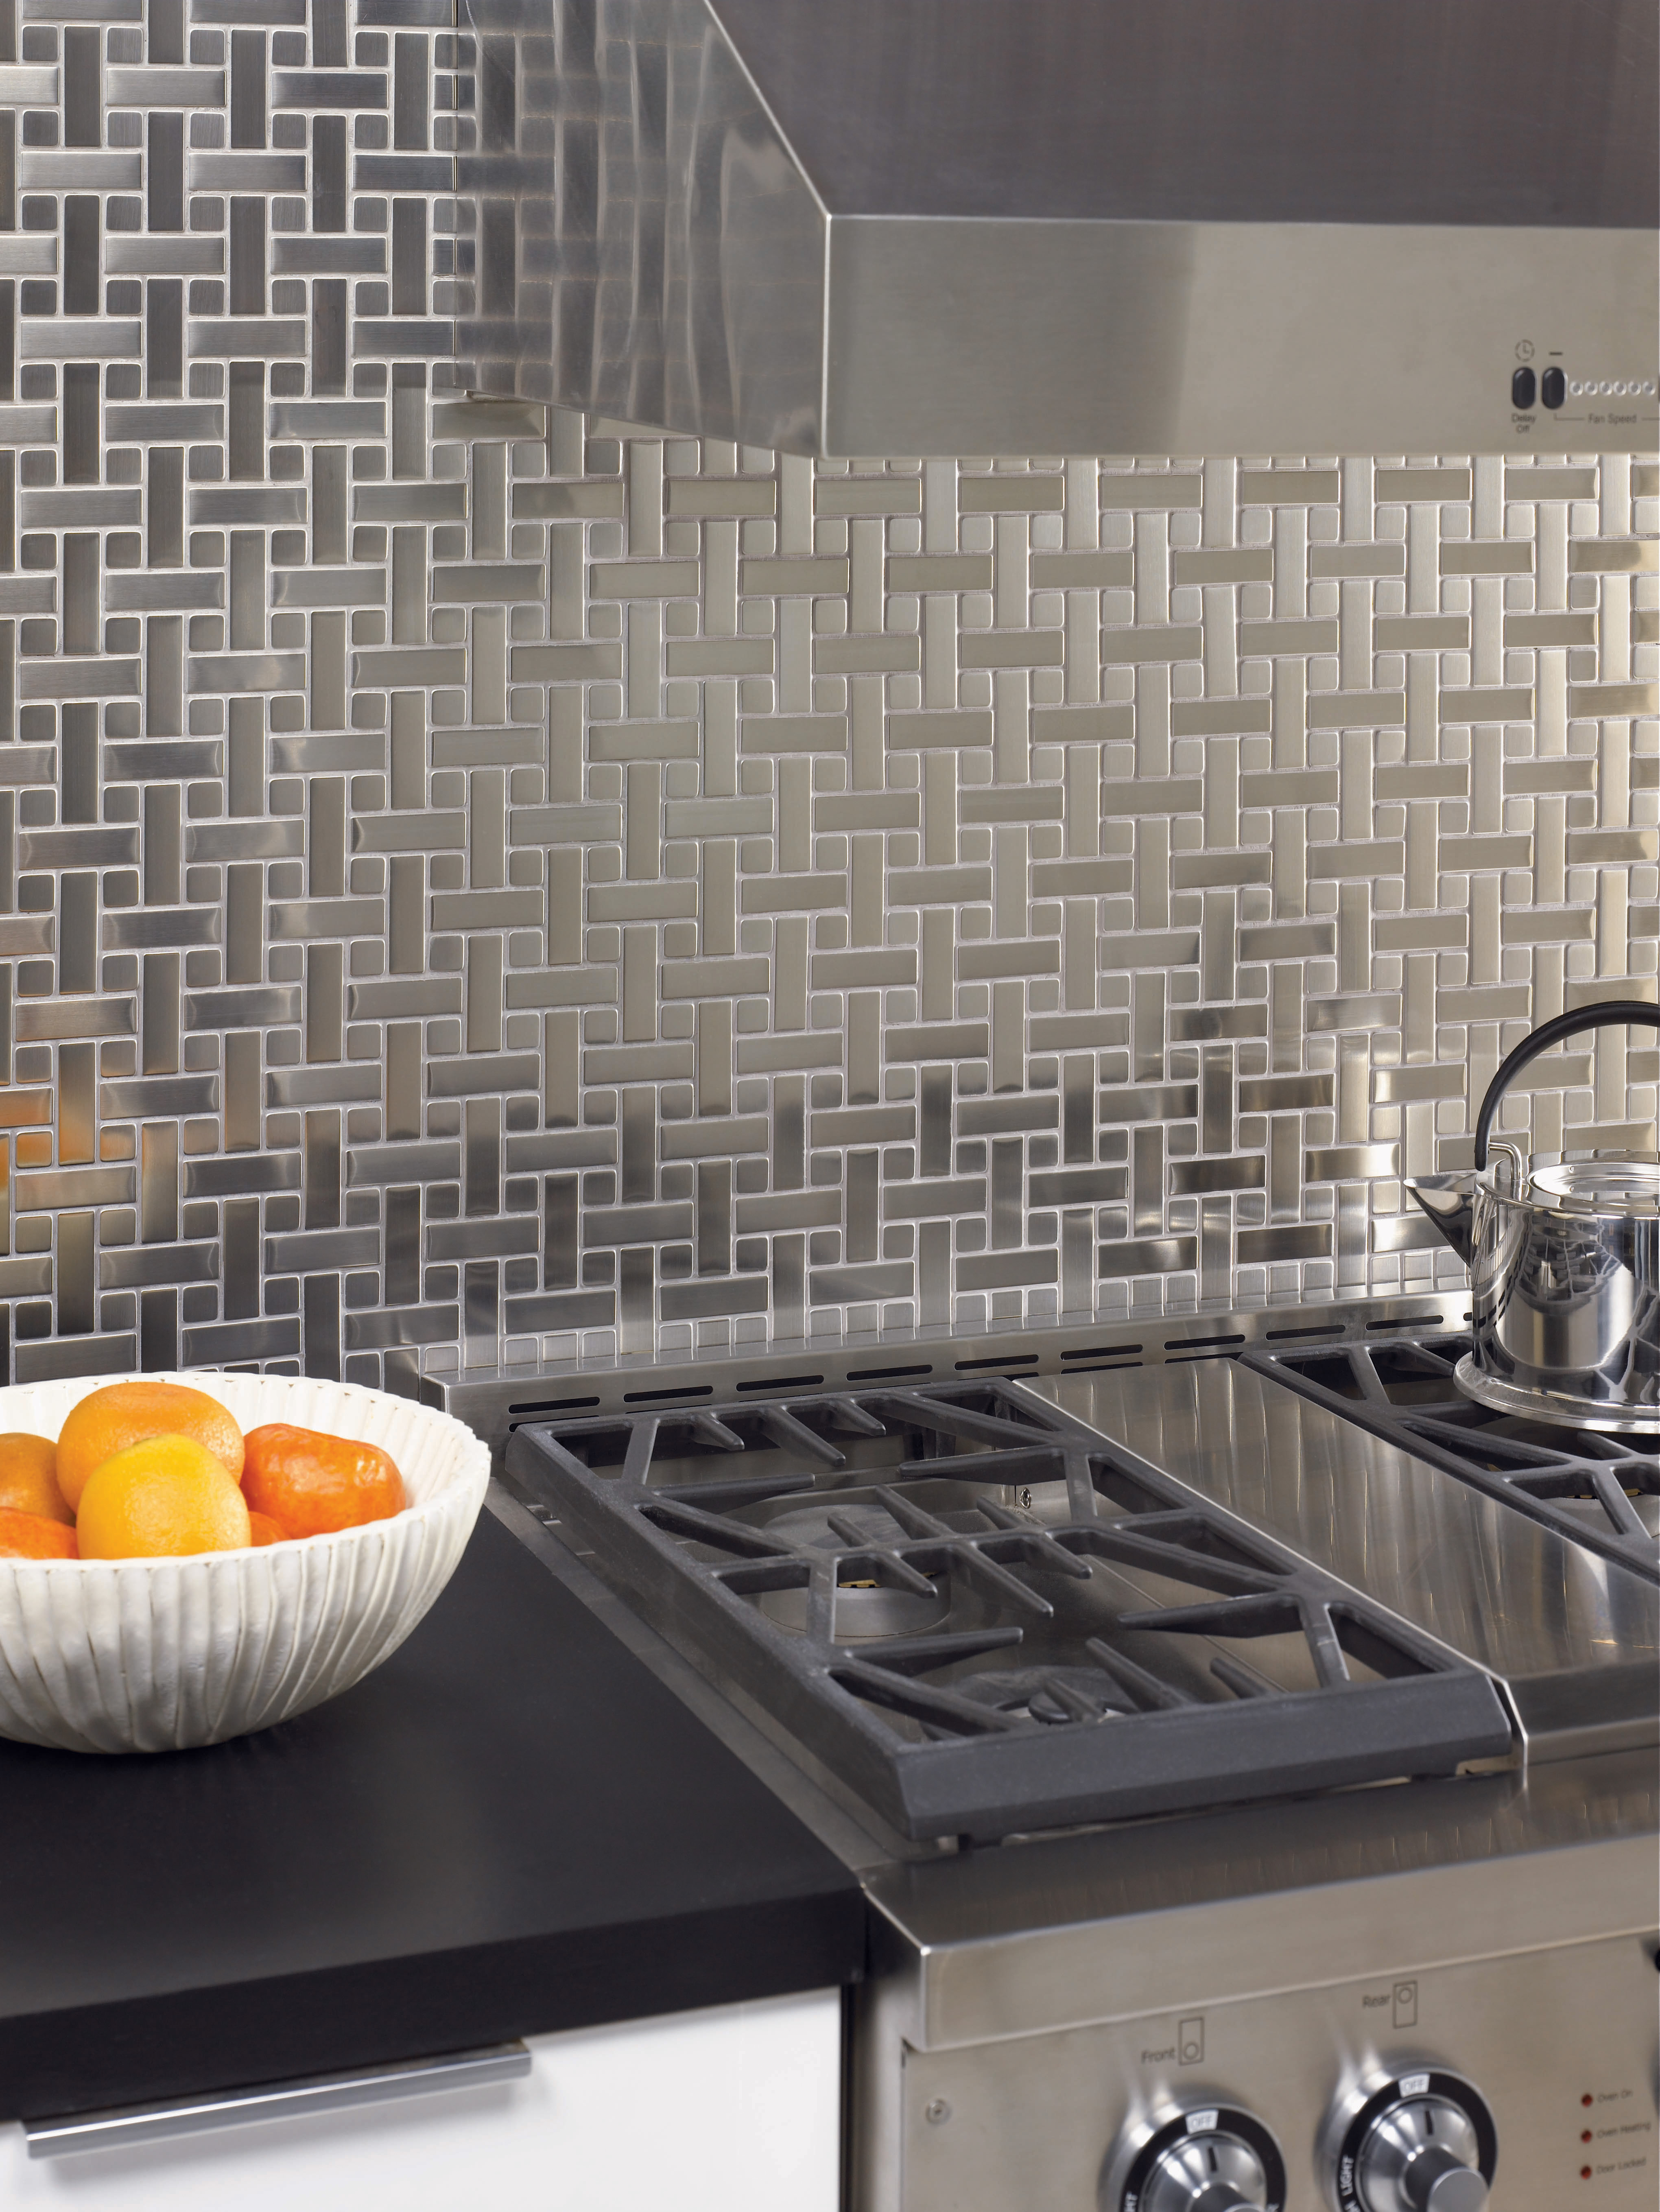 Metal tiles for kitchen backsplash